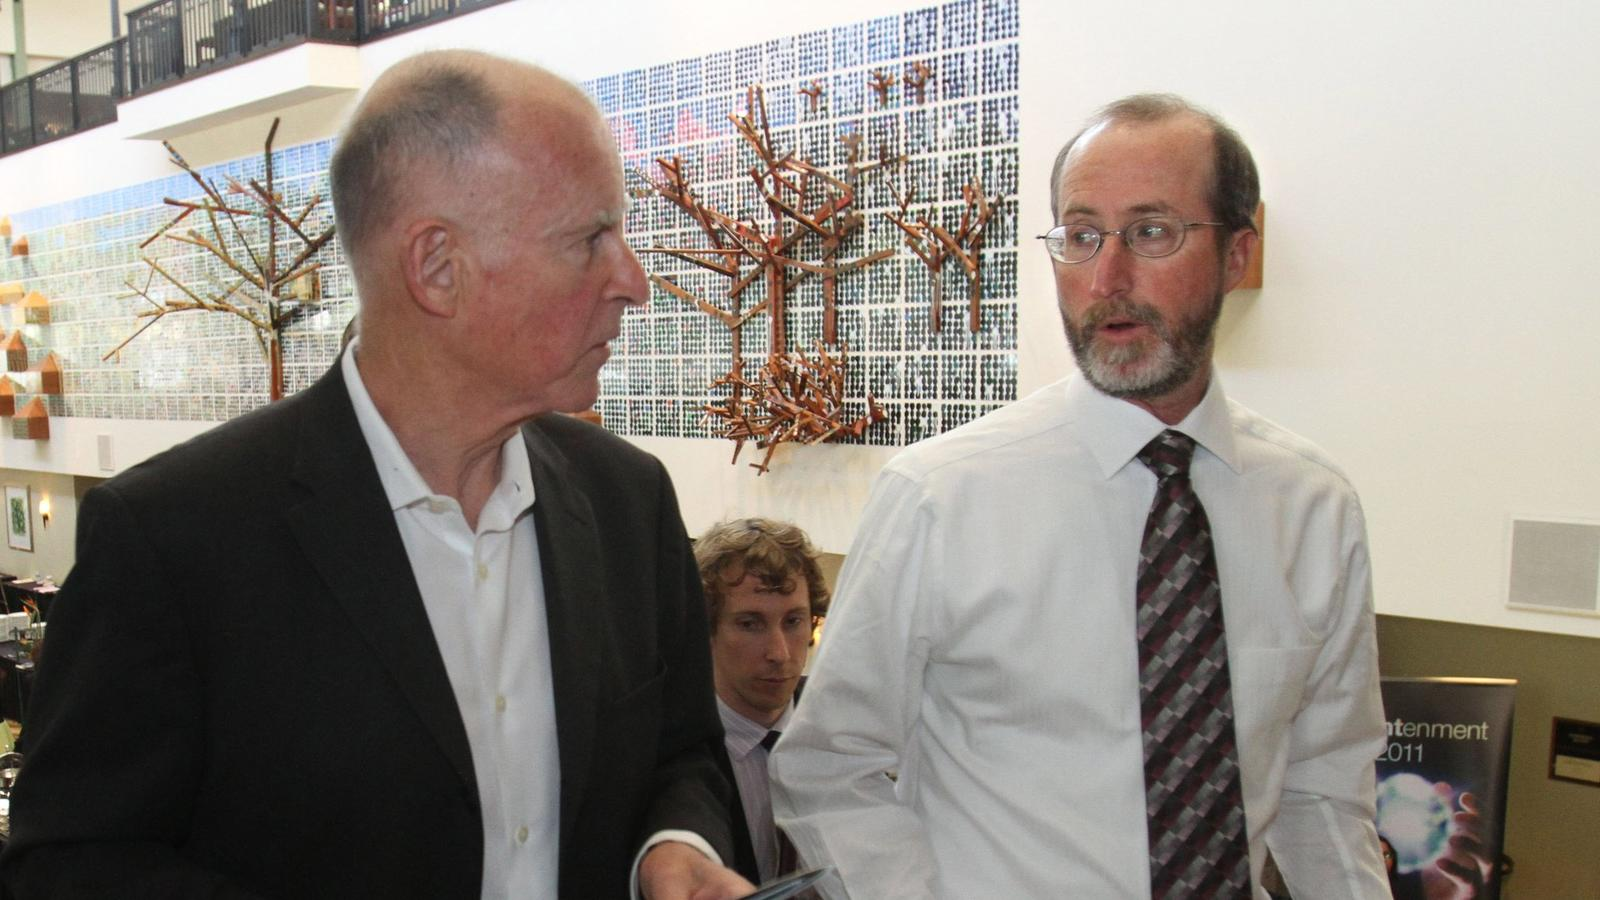 Gov. Jerry Brown speaks with Steve Glazer, then mayor of Orinda, in 2011. (Rich Pedroncelli / Associated Press)